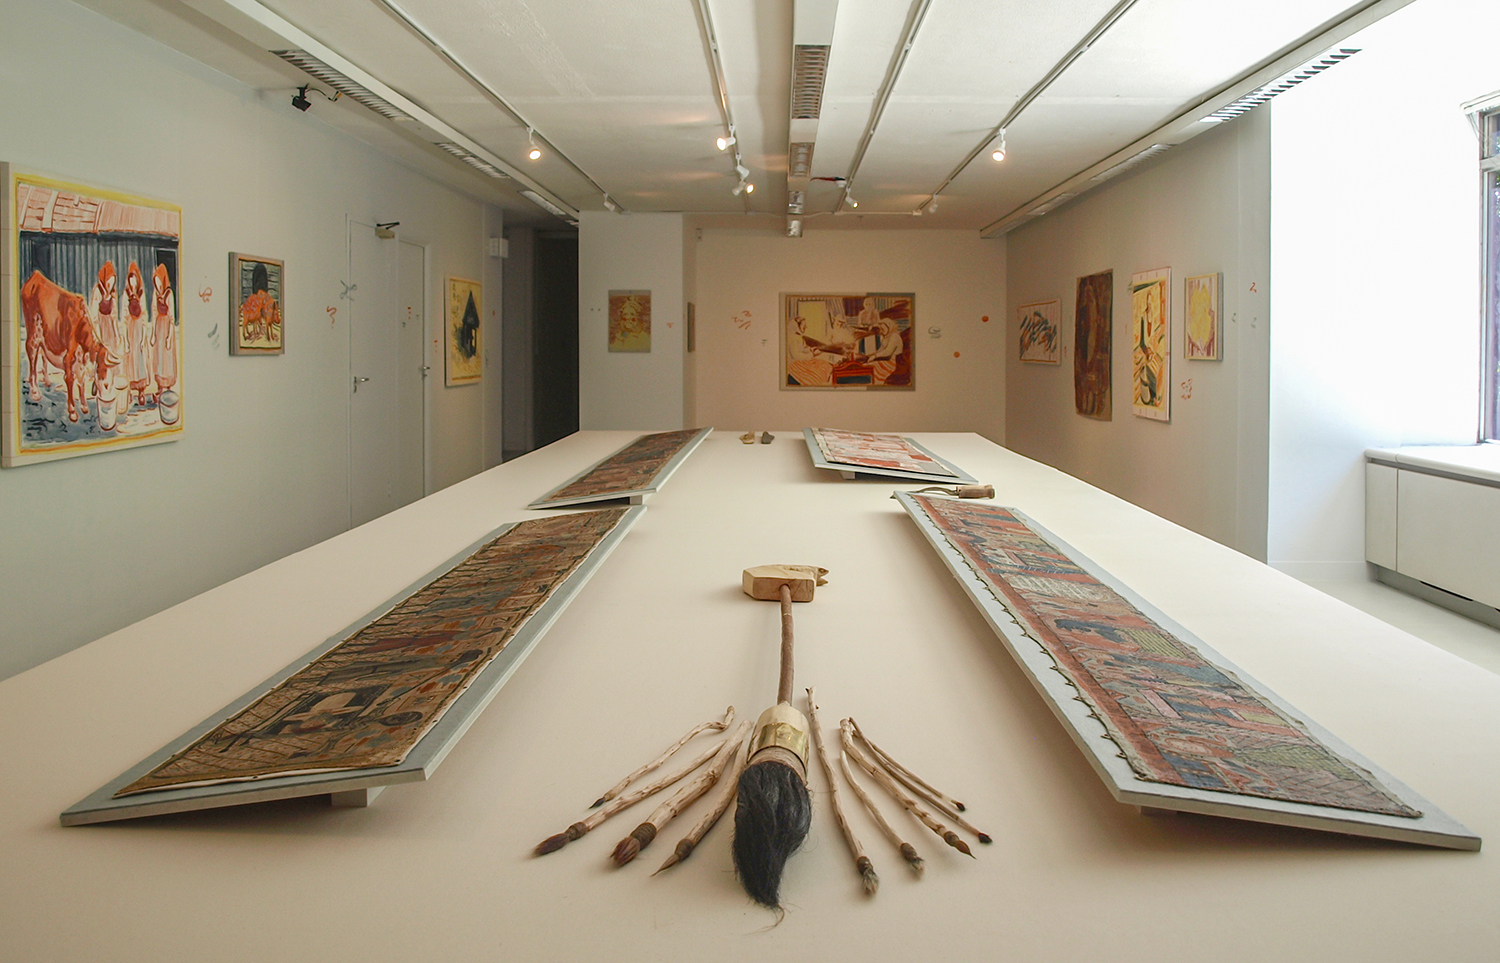 Installation shot with giant brush, brushes, farm tools and peasant paintings at ASC Gallery, London, 2014.